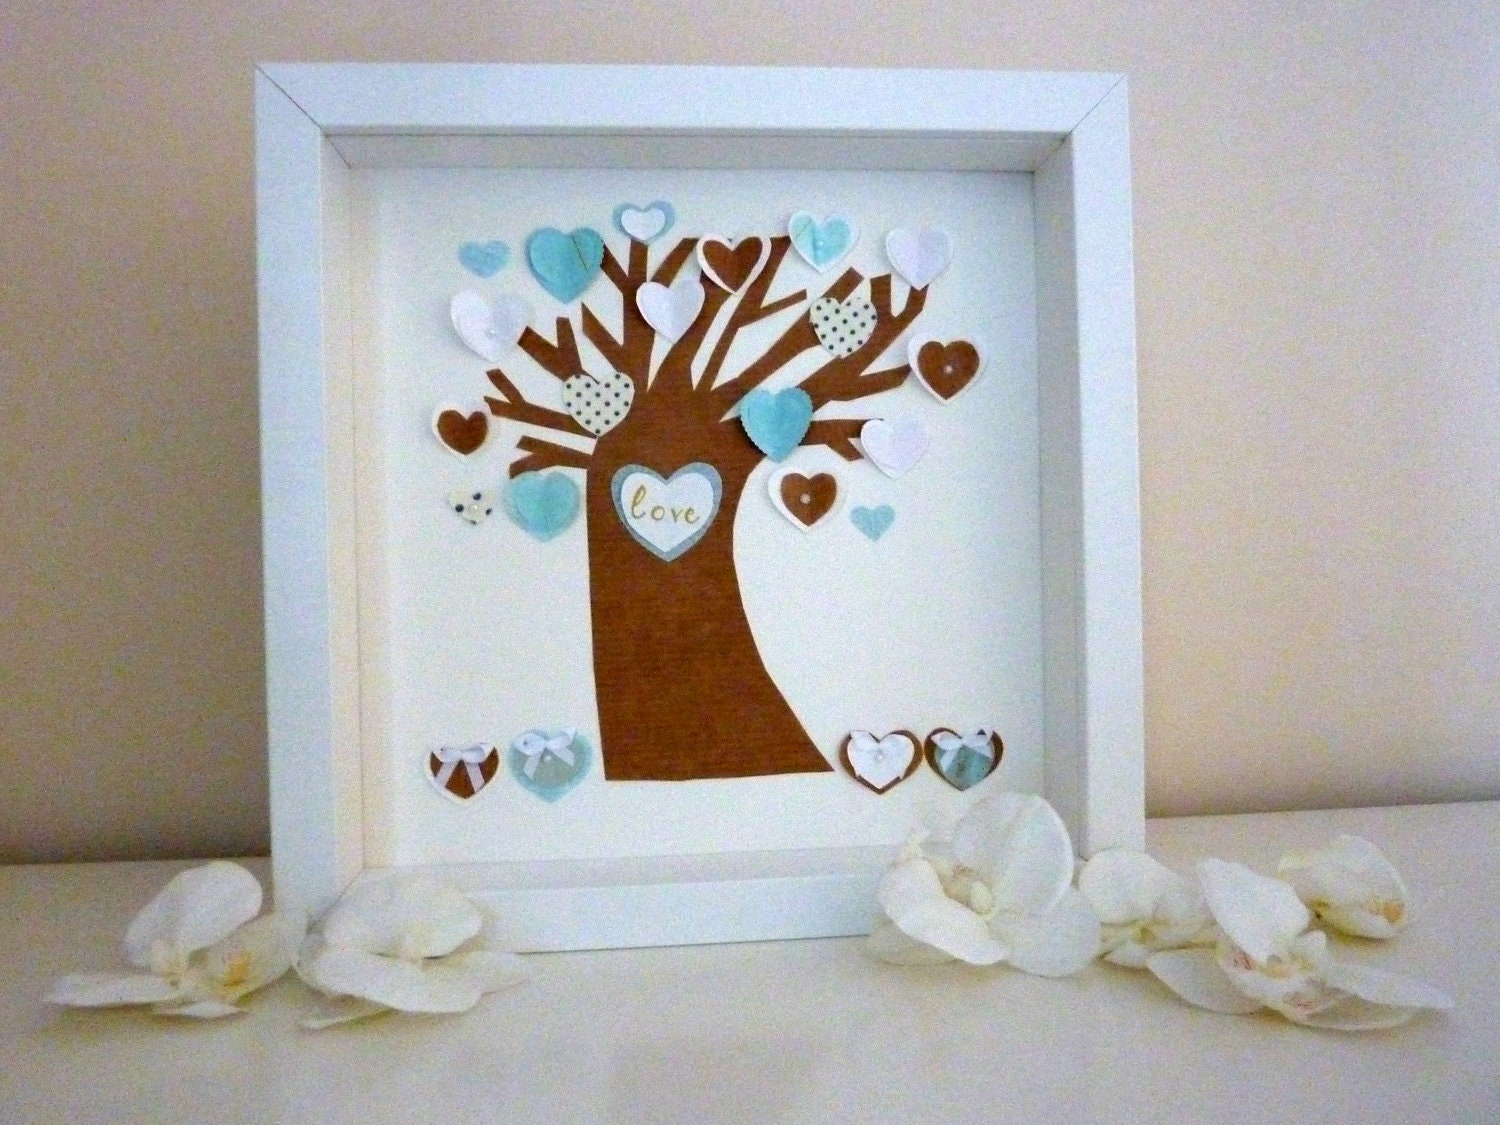 Personalized hearts tree, fabric and paper handmade picture, gift for wedding/ new baby - CreatedWithLoveuk